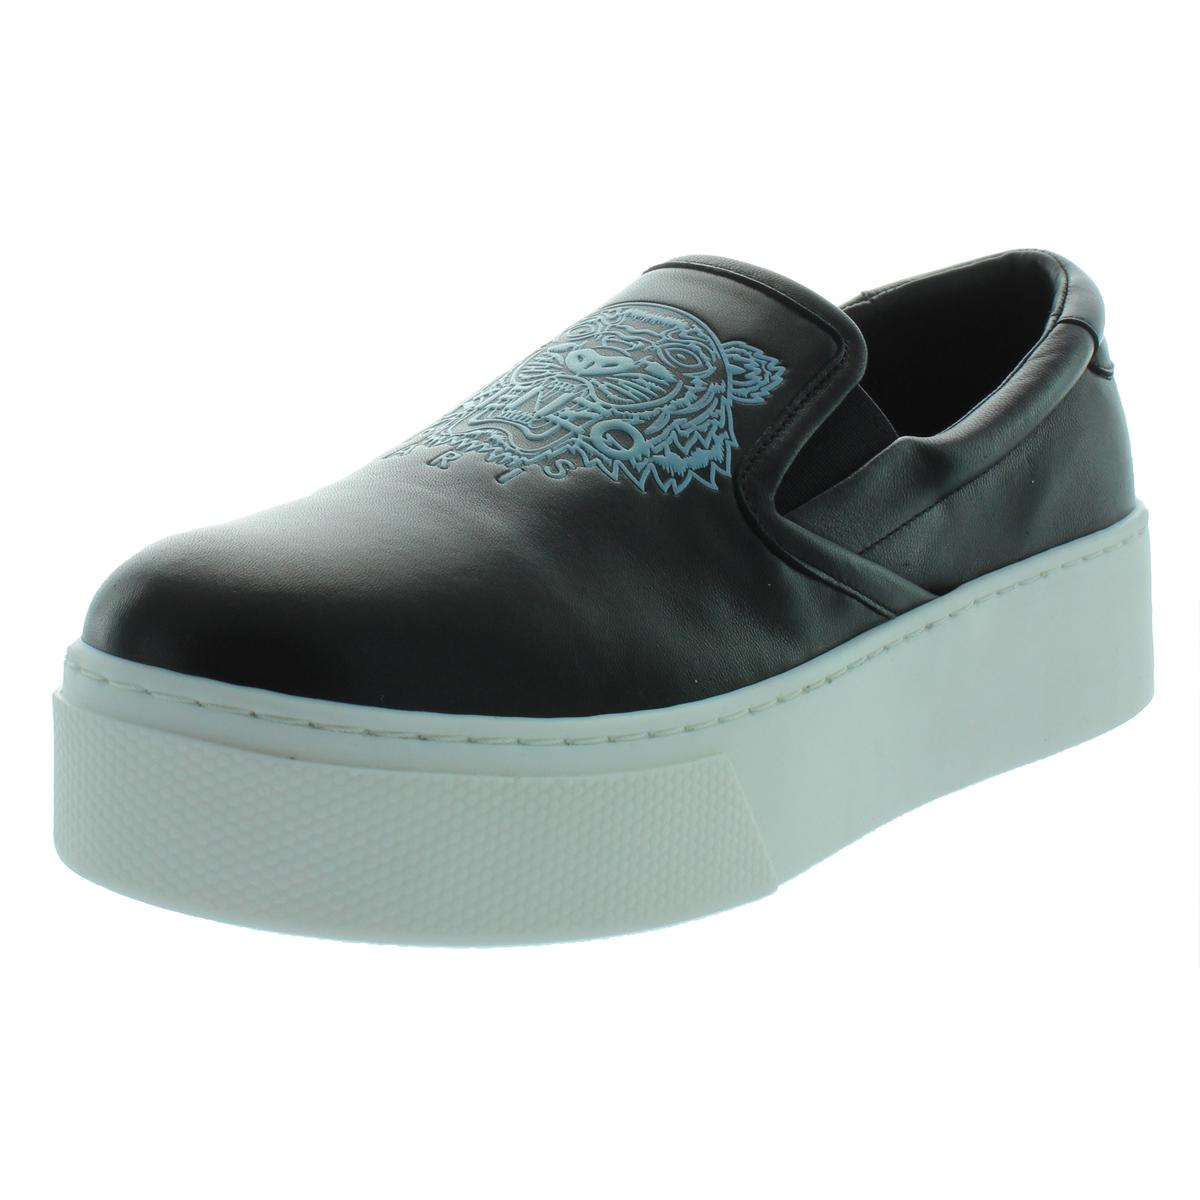 83a25fc75ea9 Details about Kenzo Womens Black Leather Casual Shoes Platforms 37 Medium  (B